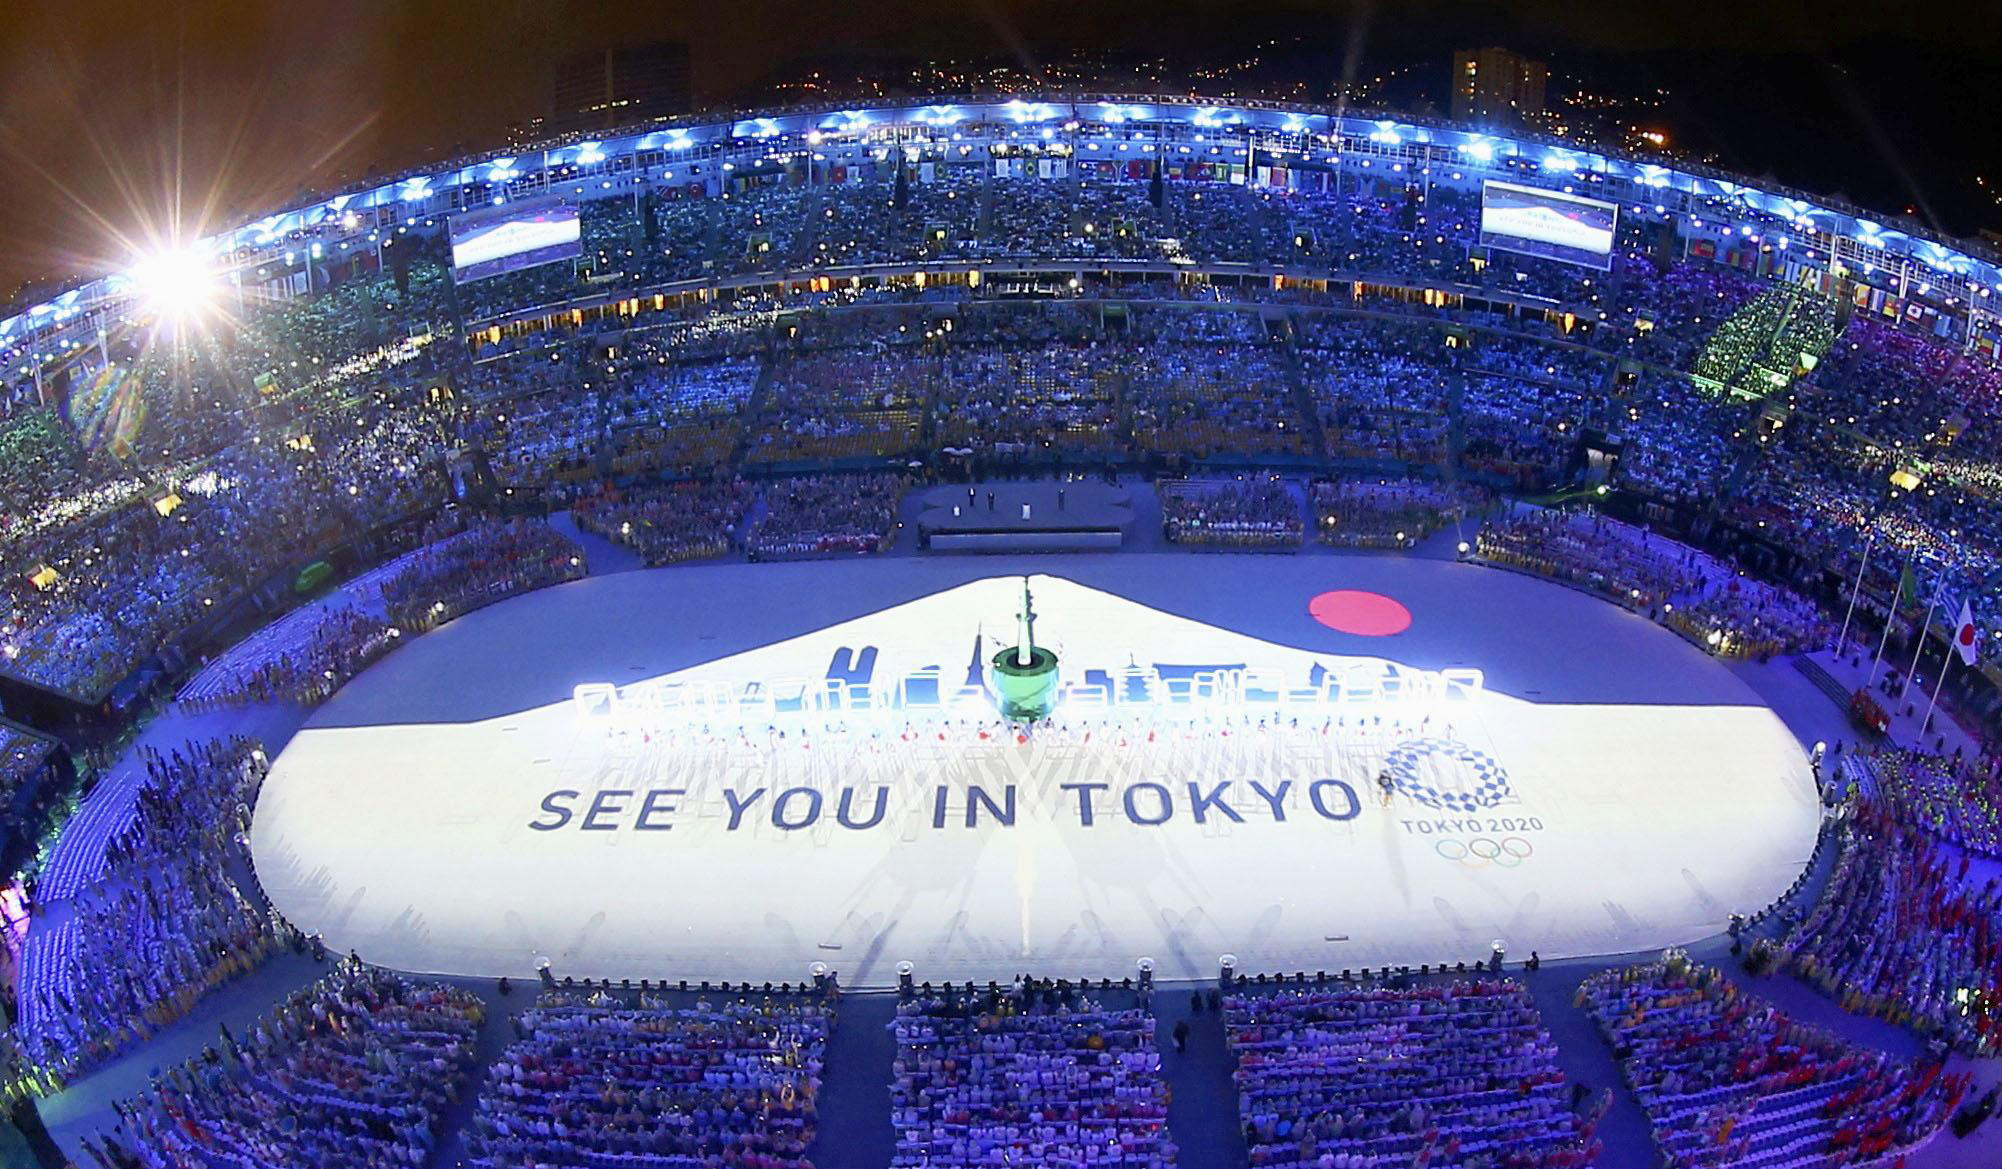 A message appears to introduce the 2020 Tokyo Olympics during the closing ceremony of the 2016 Summer Olympic Games in Rio de Janeiro. |   KYODO